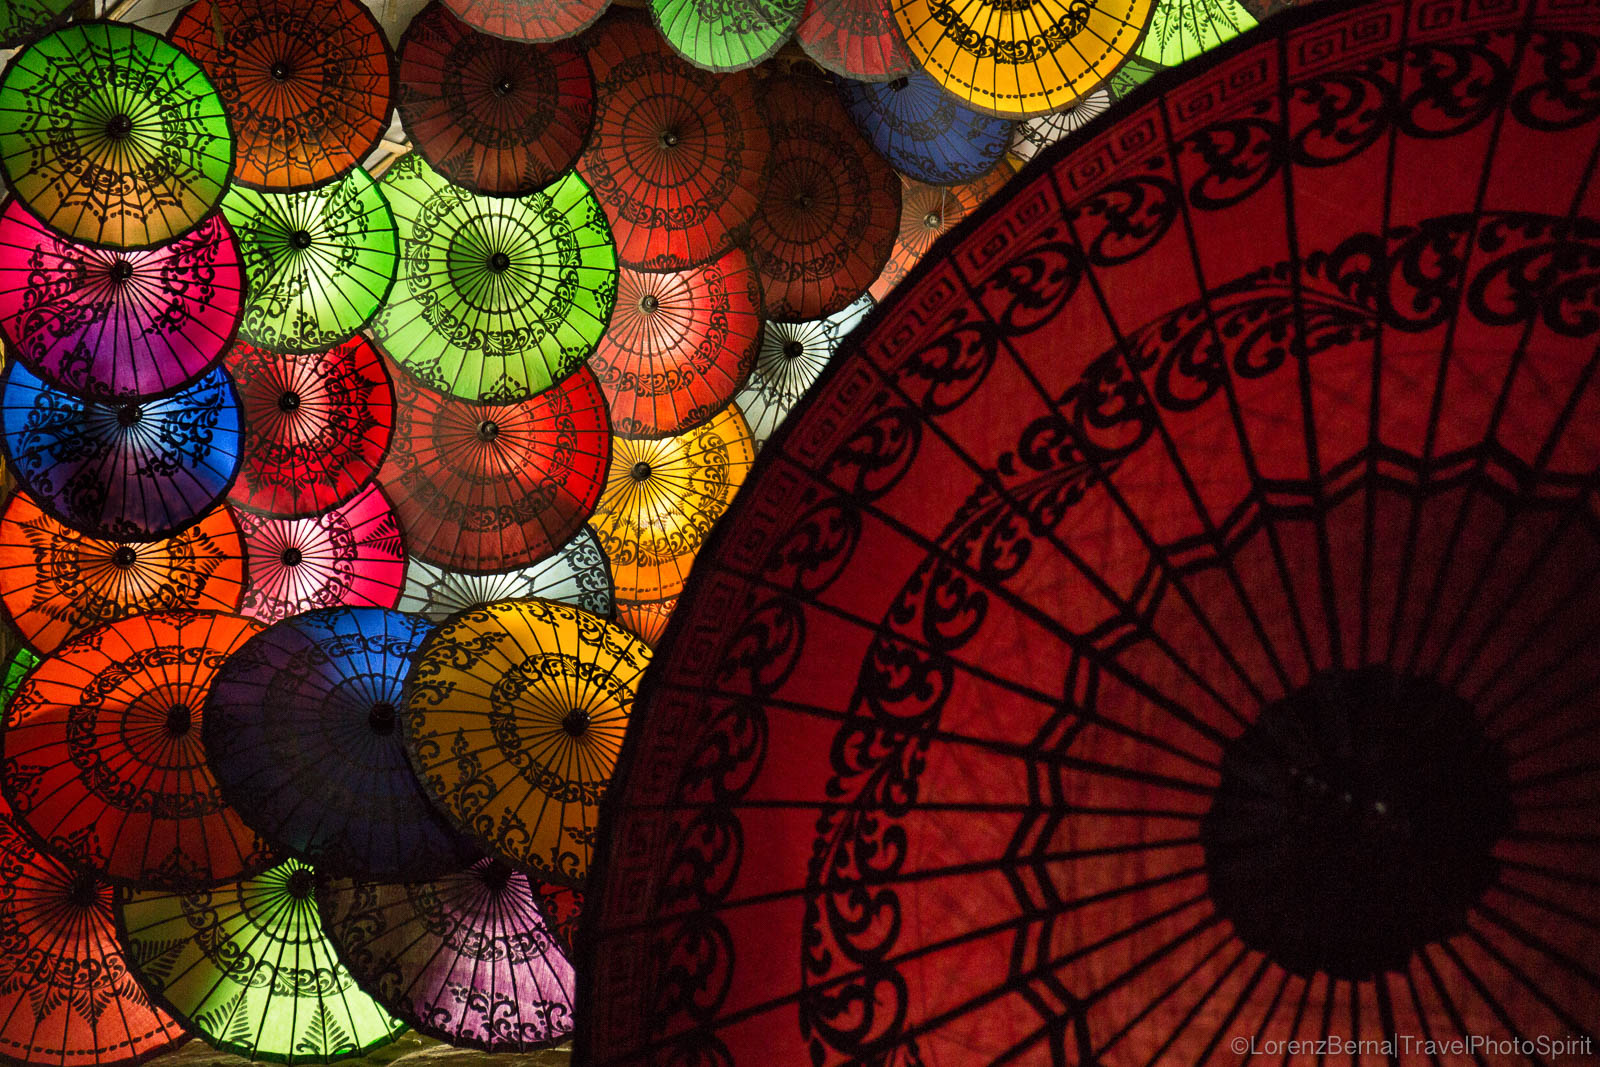 Myanmar traditional colourful umbrellas.